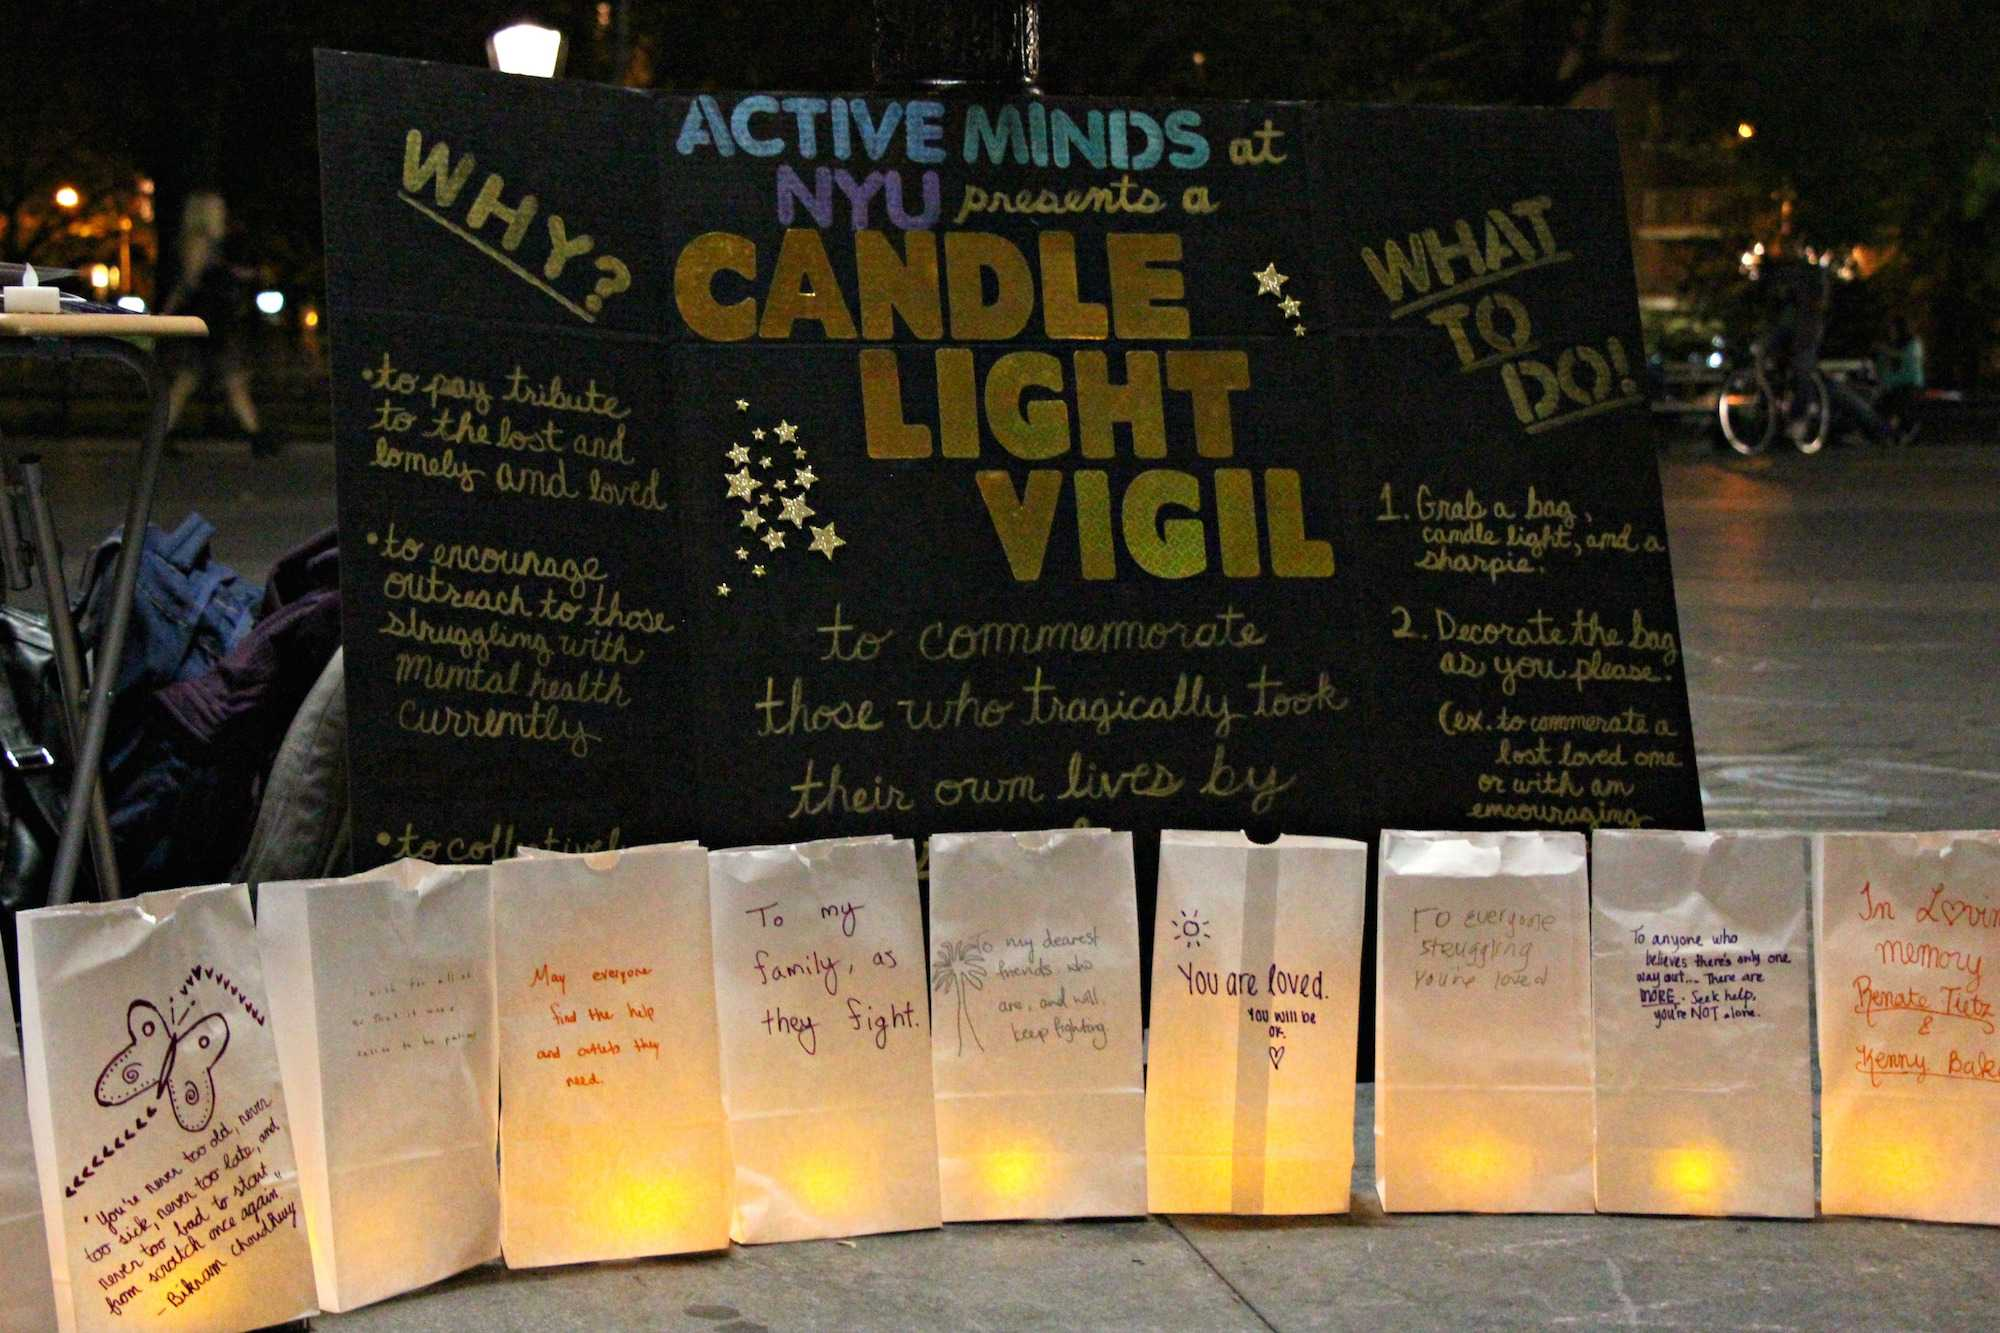 Posters and words of commemoration and encouragement as part of a candlelight vigil for those who have committed suicide.